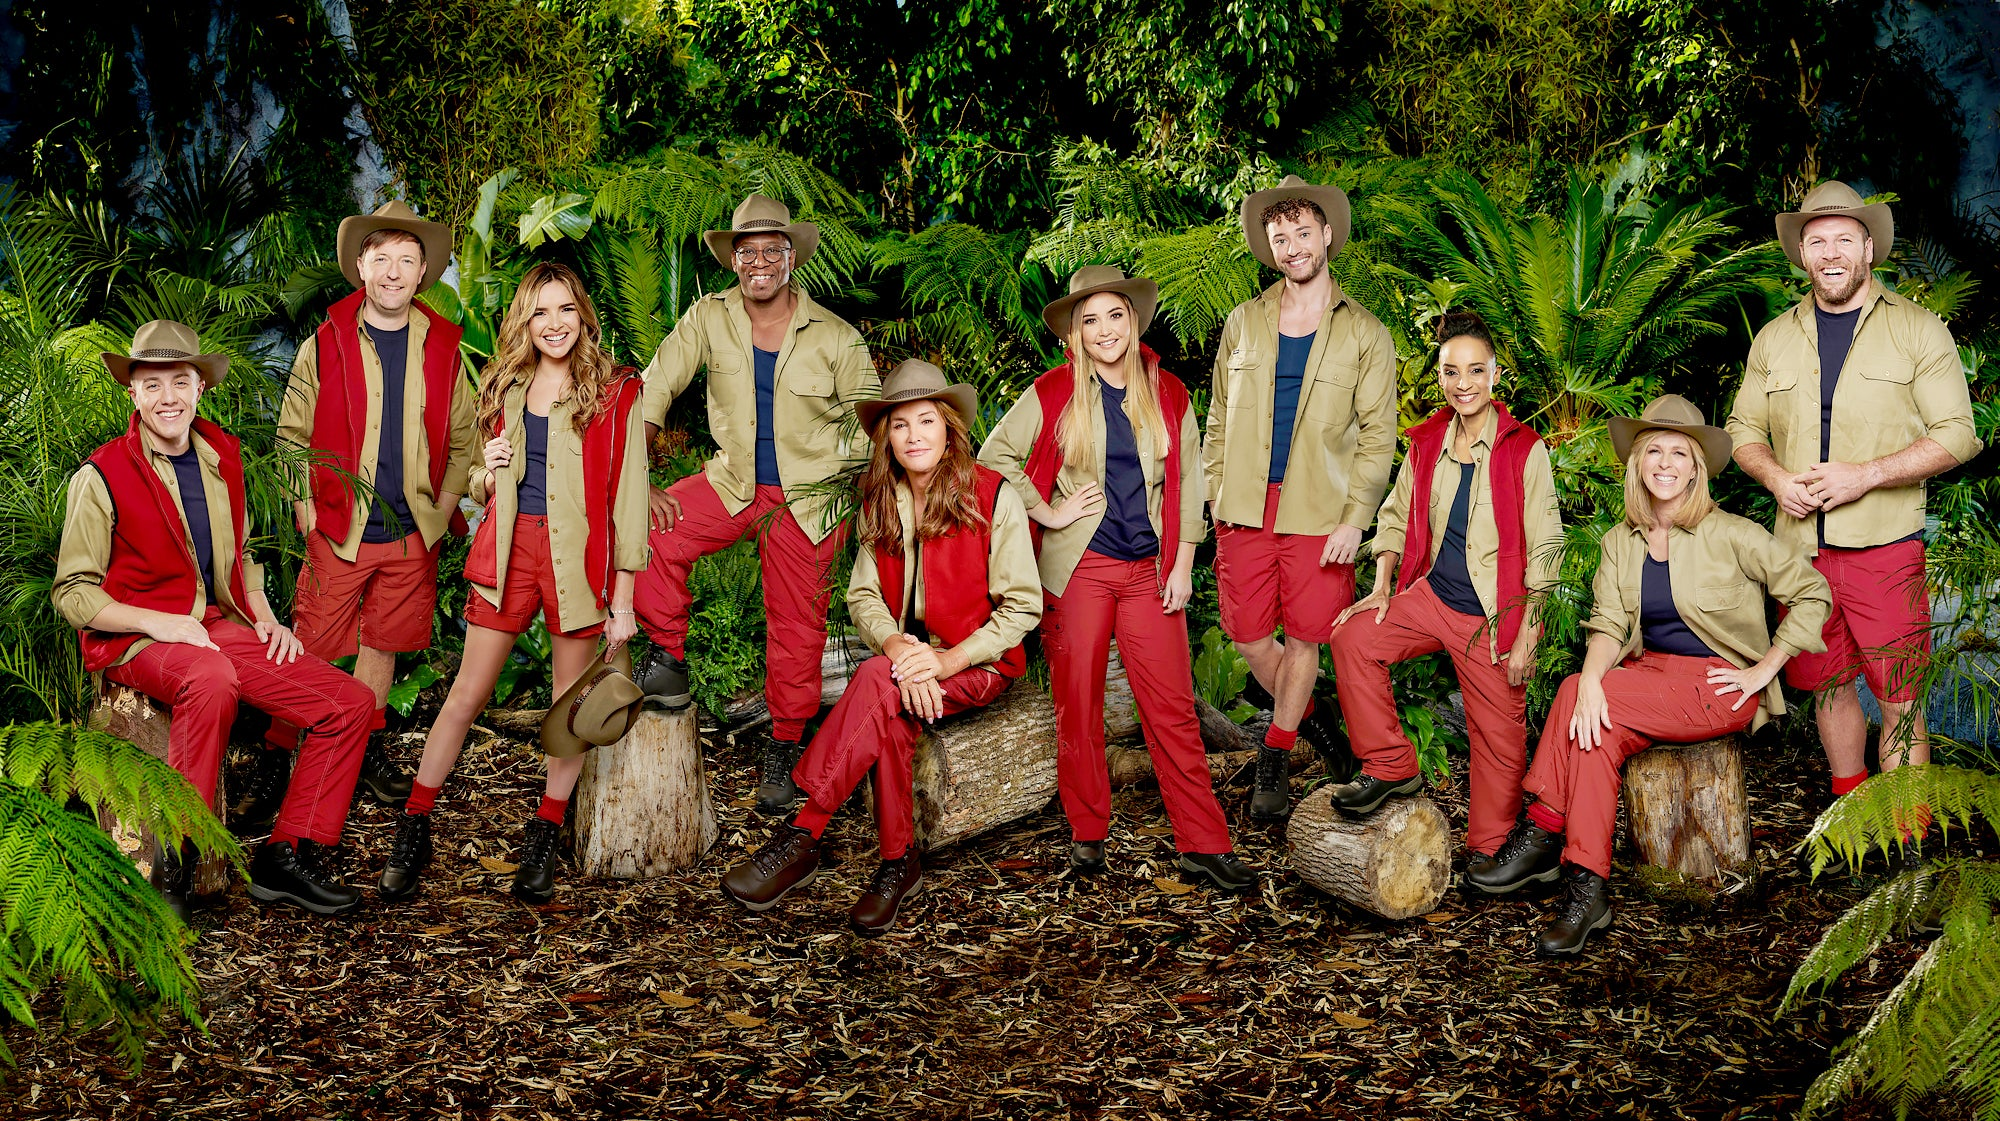 Why does I'm a Celebrity try to drum up controversy when that's the least appealing part of the show?